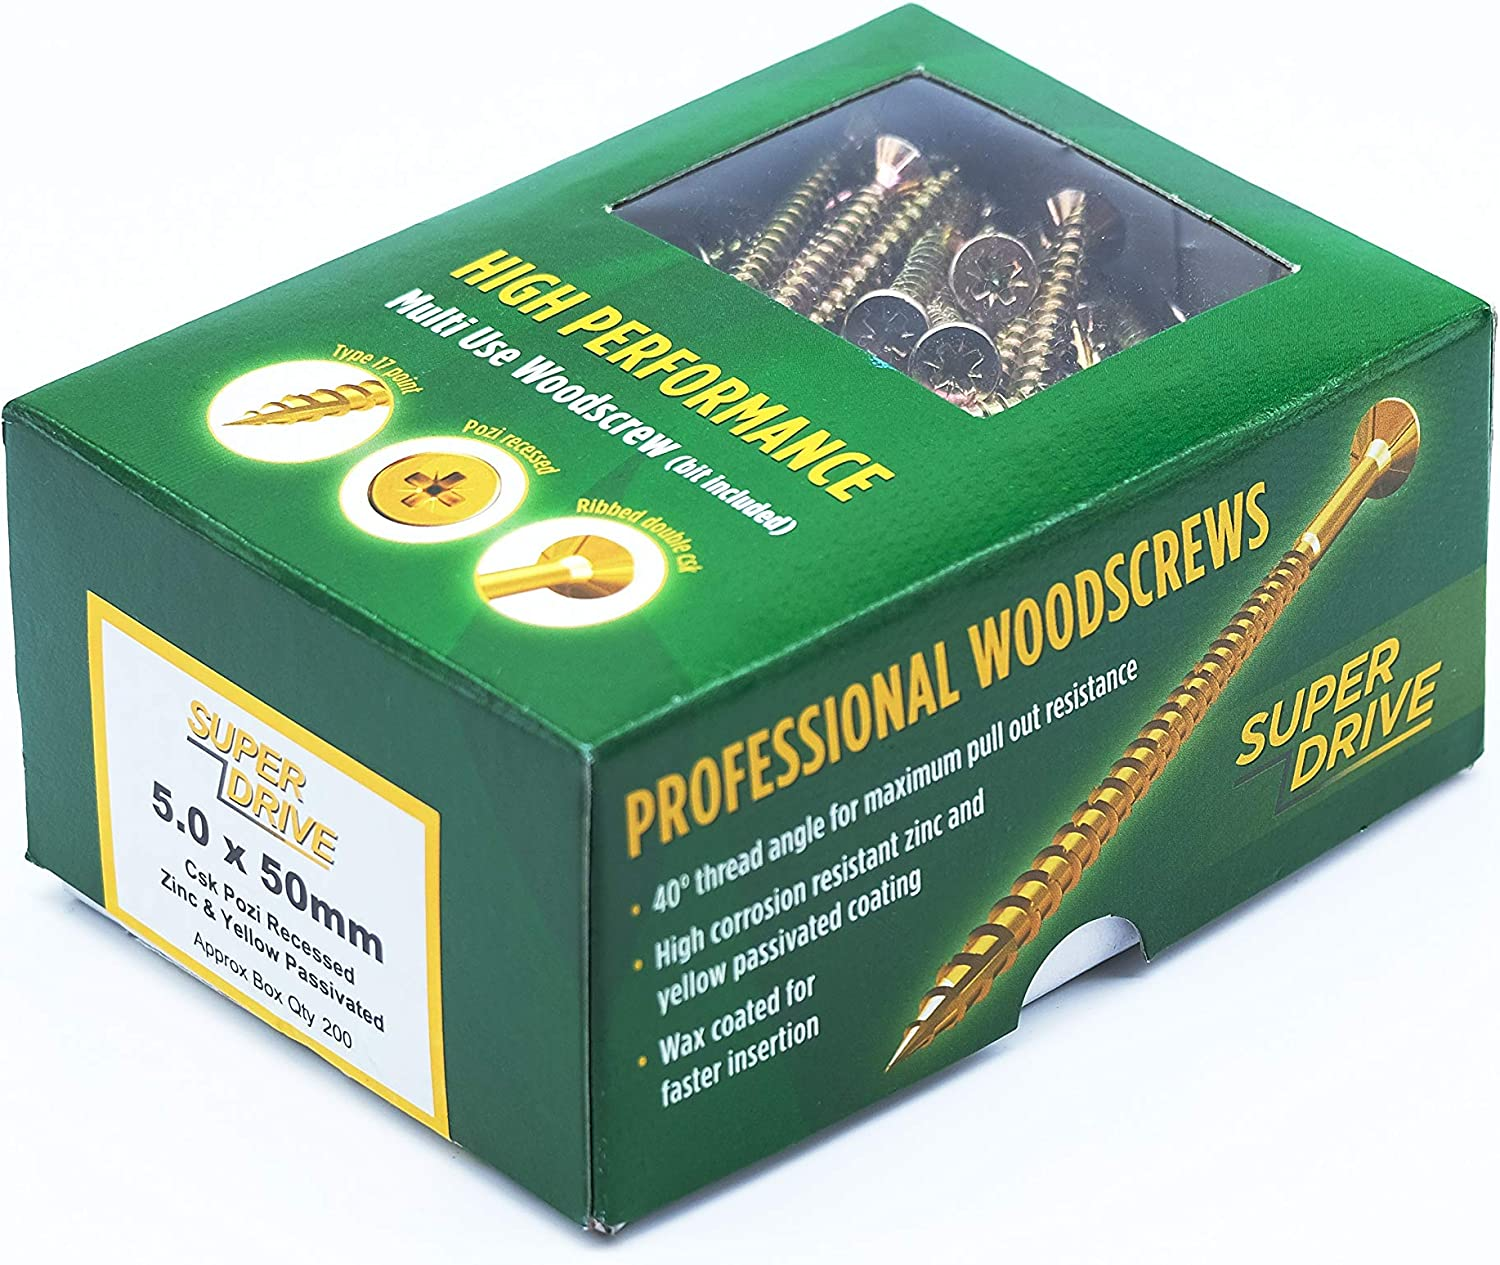 5 x 70 SEQUAL/® Box of 100 High Performance Multi Use Wood Screws Super Drive Professional and Home Use with Free Bit